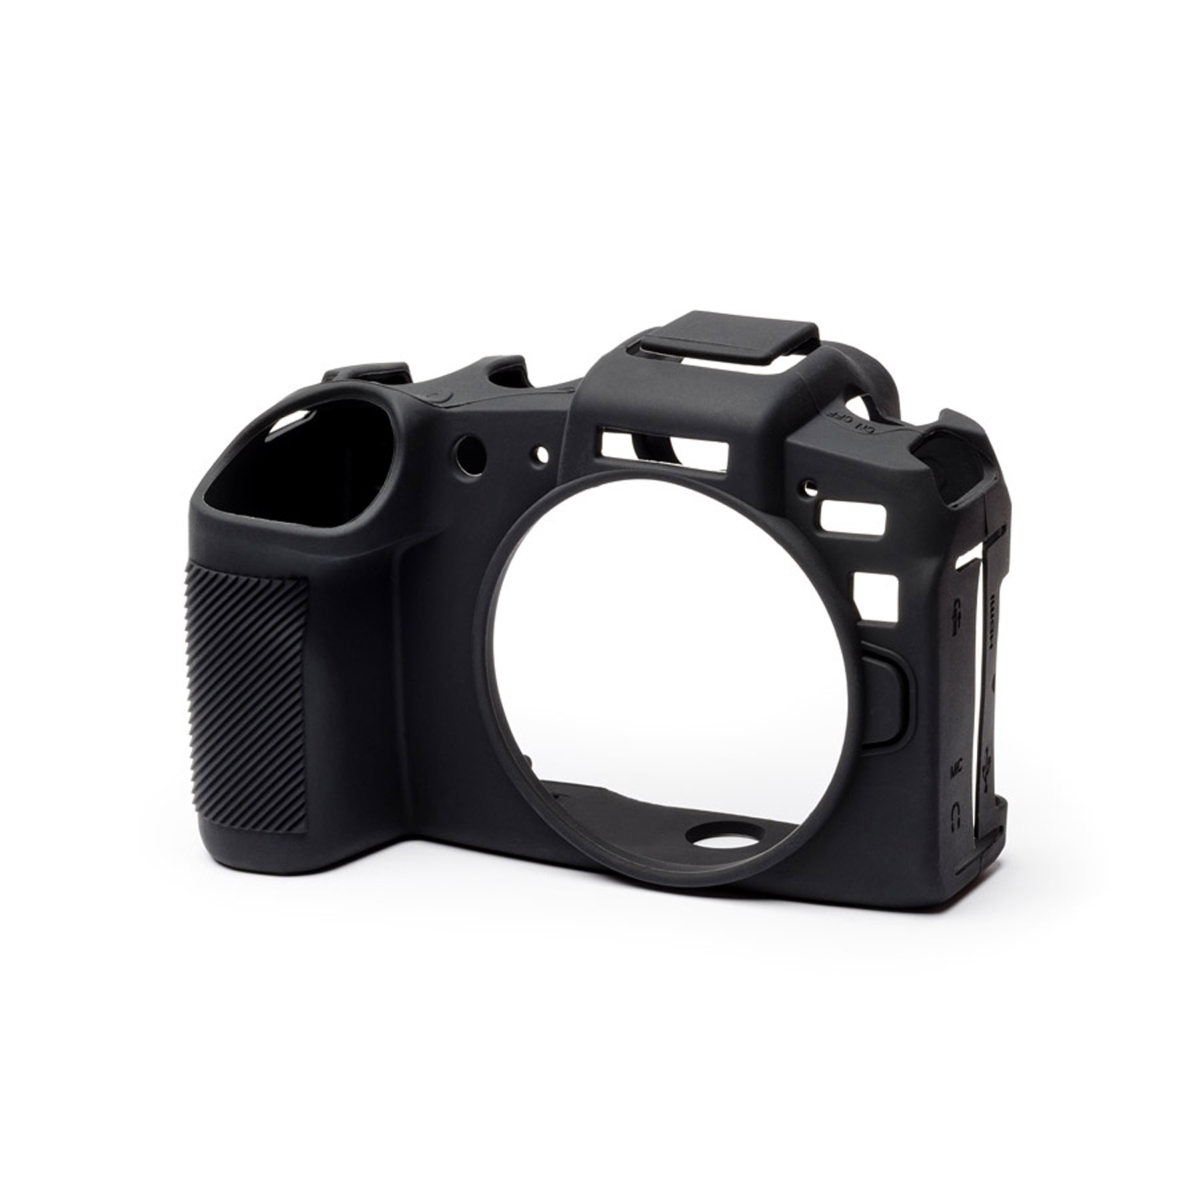 Walimex pro easyCover for Canon RP